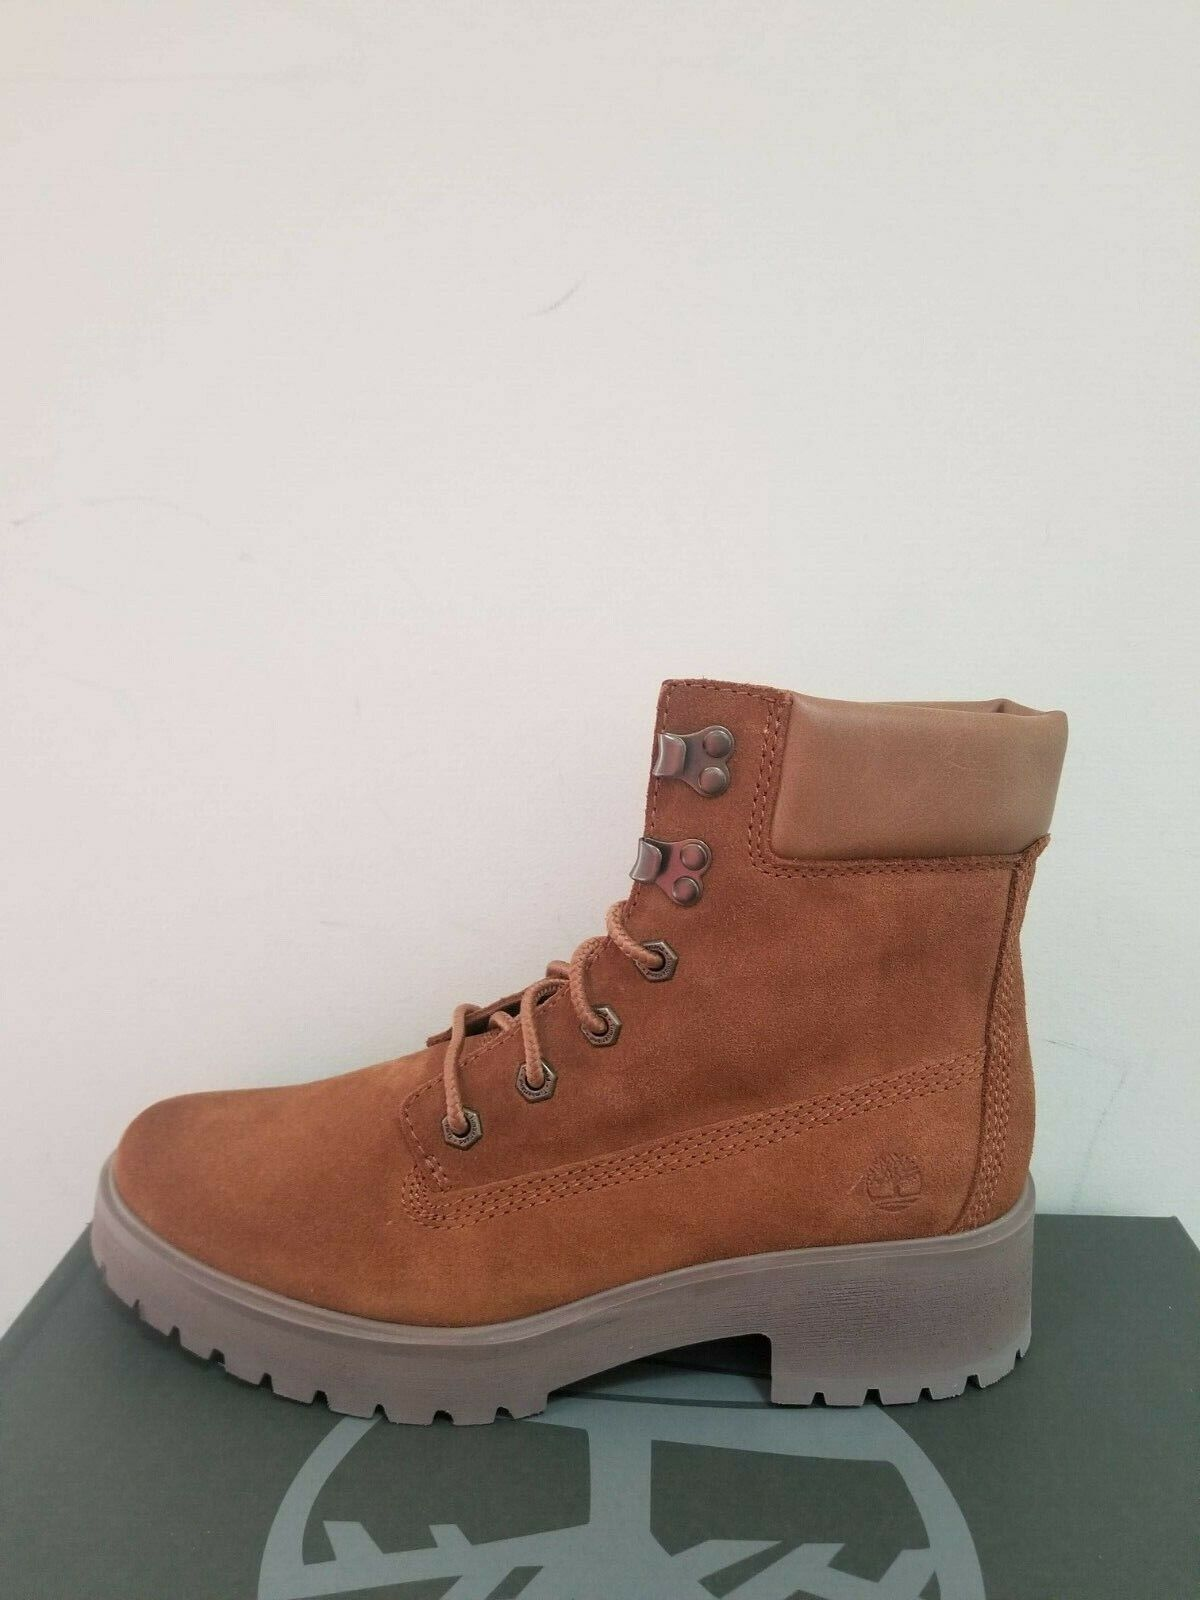 Timberland Women's  Carnaby Cool  6-Inch  Boots  NIB